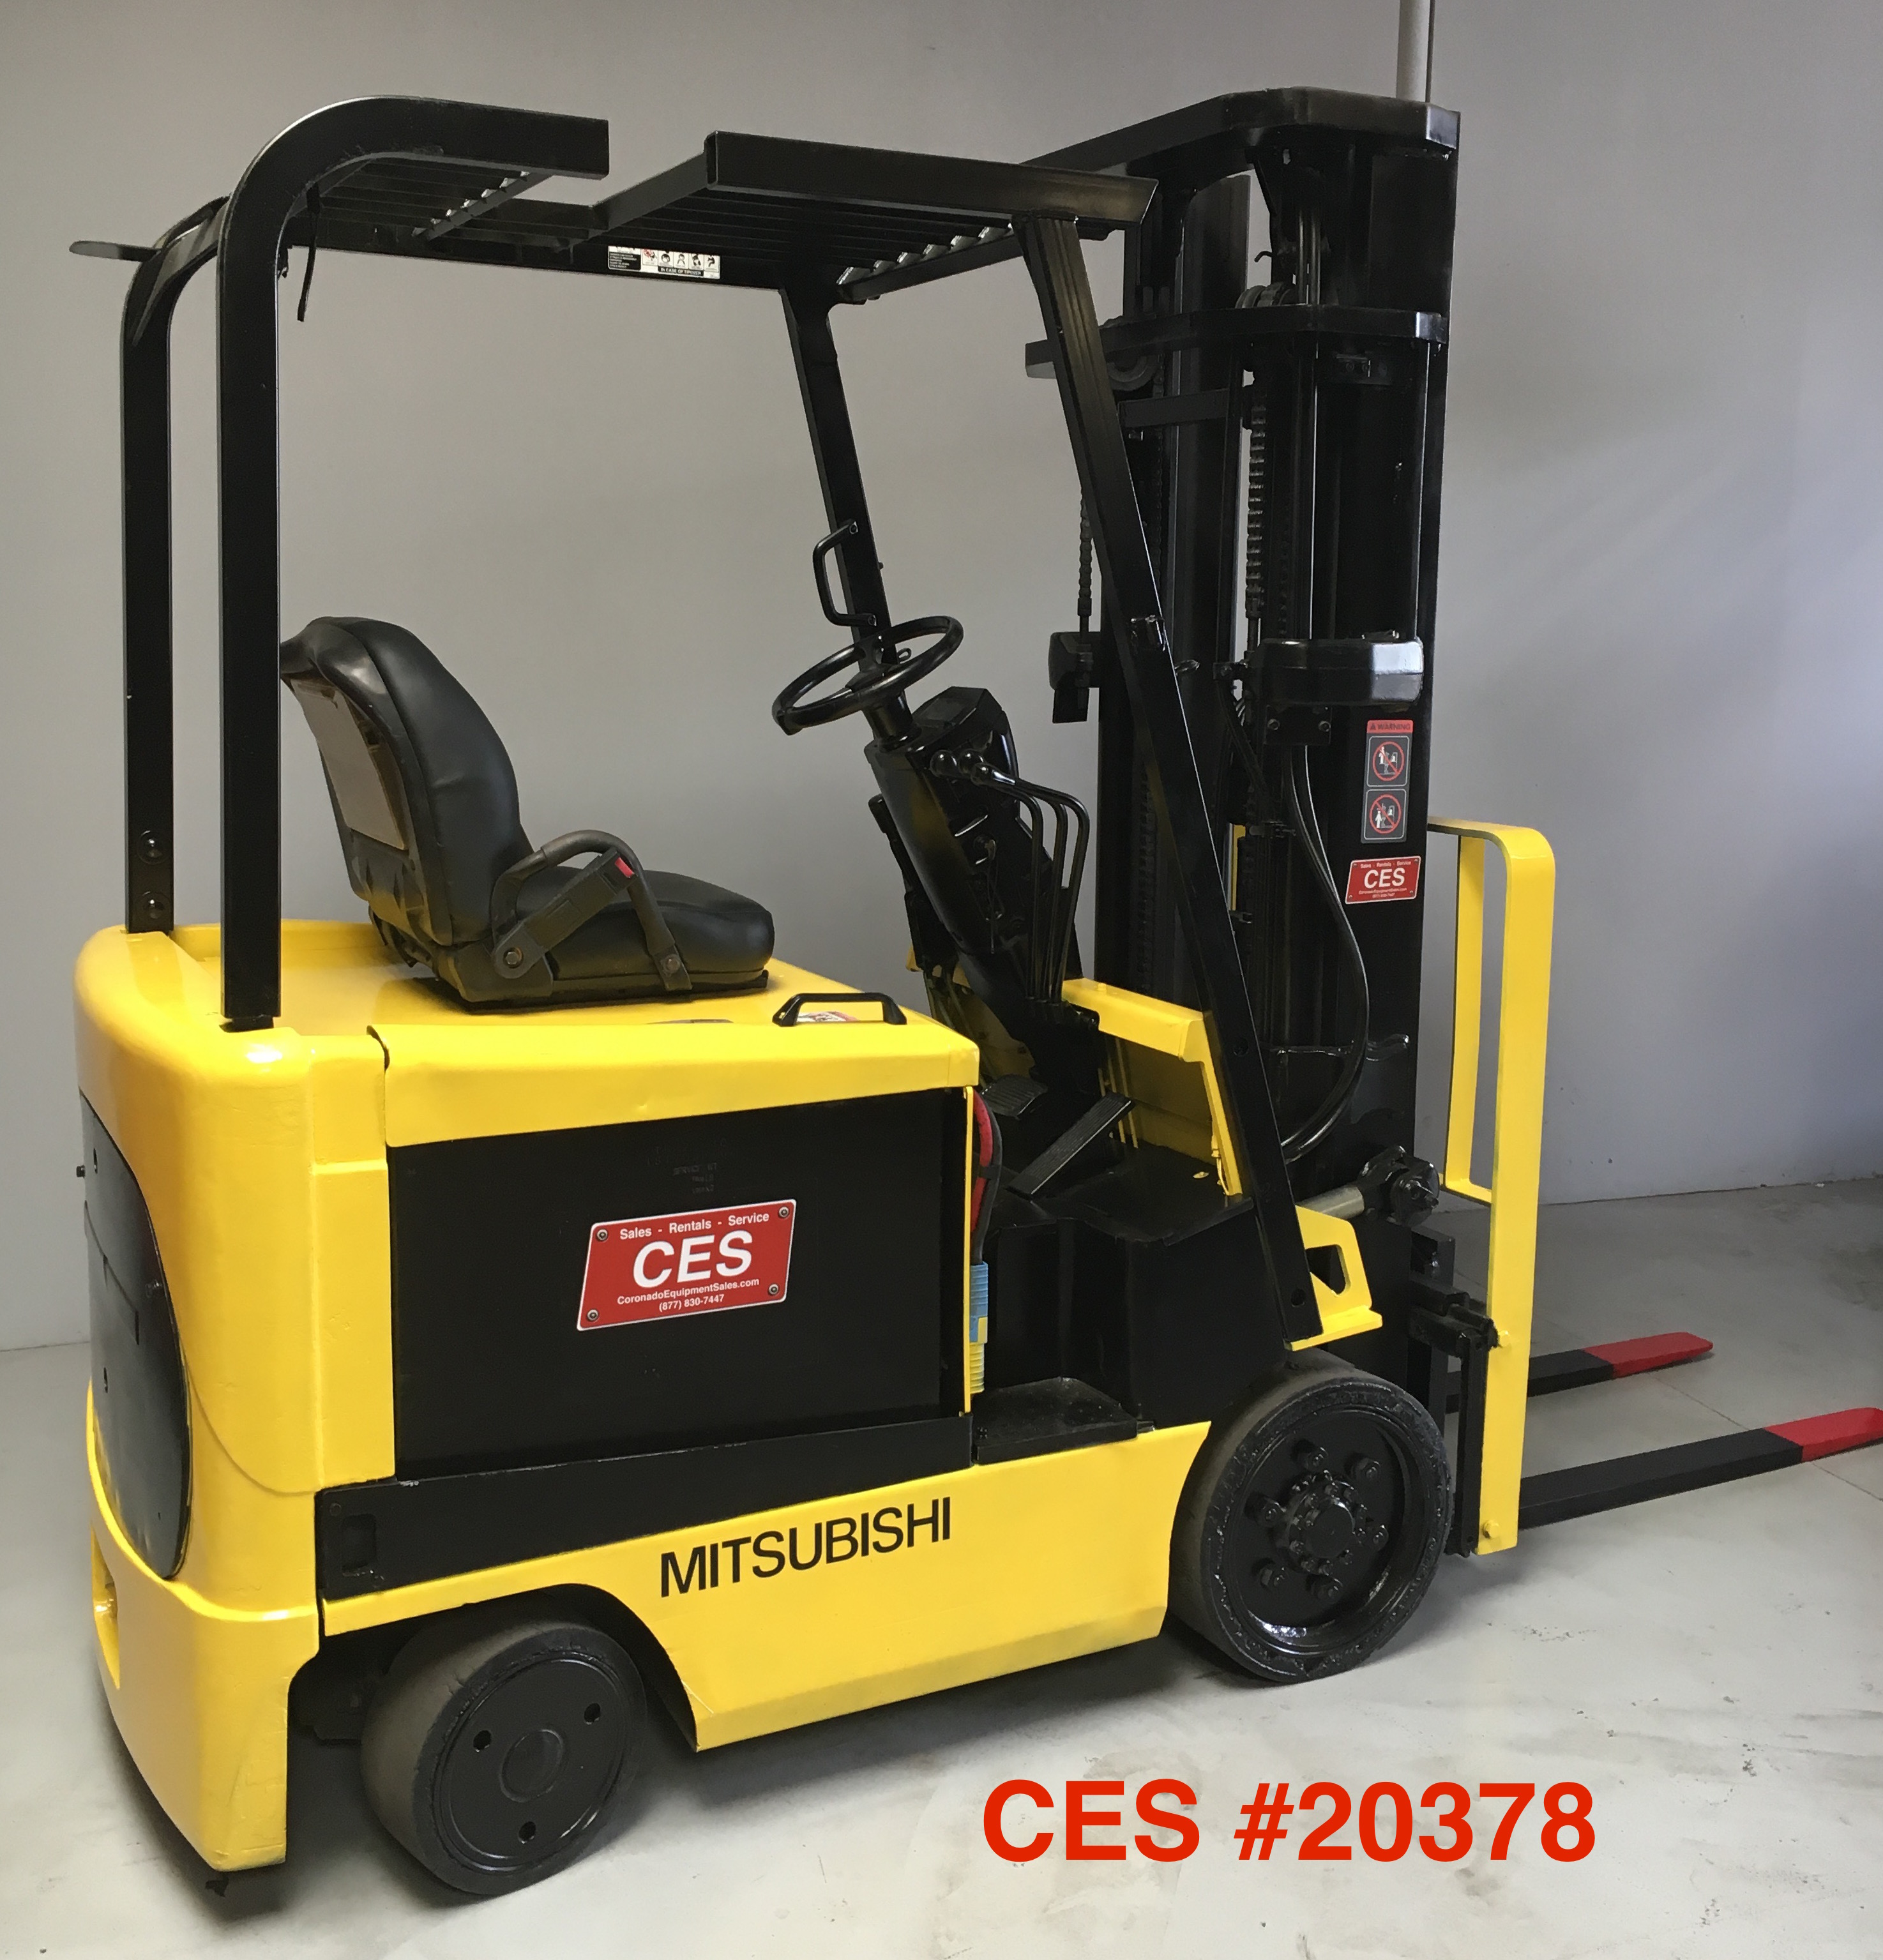 wheel electric mitsubishi front forklifts cushion toyota forklift large series view rider tire lbs motor